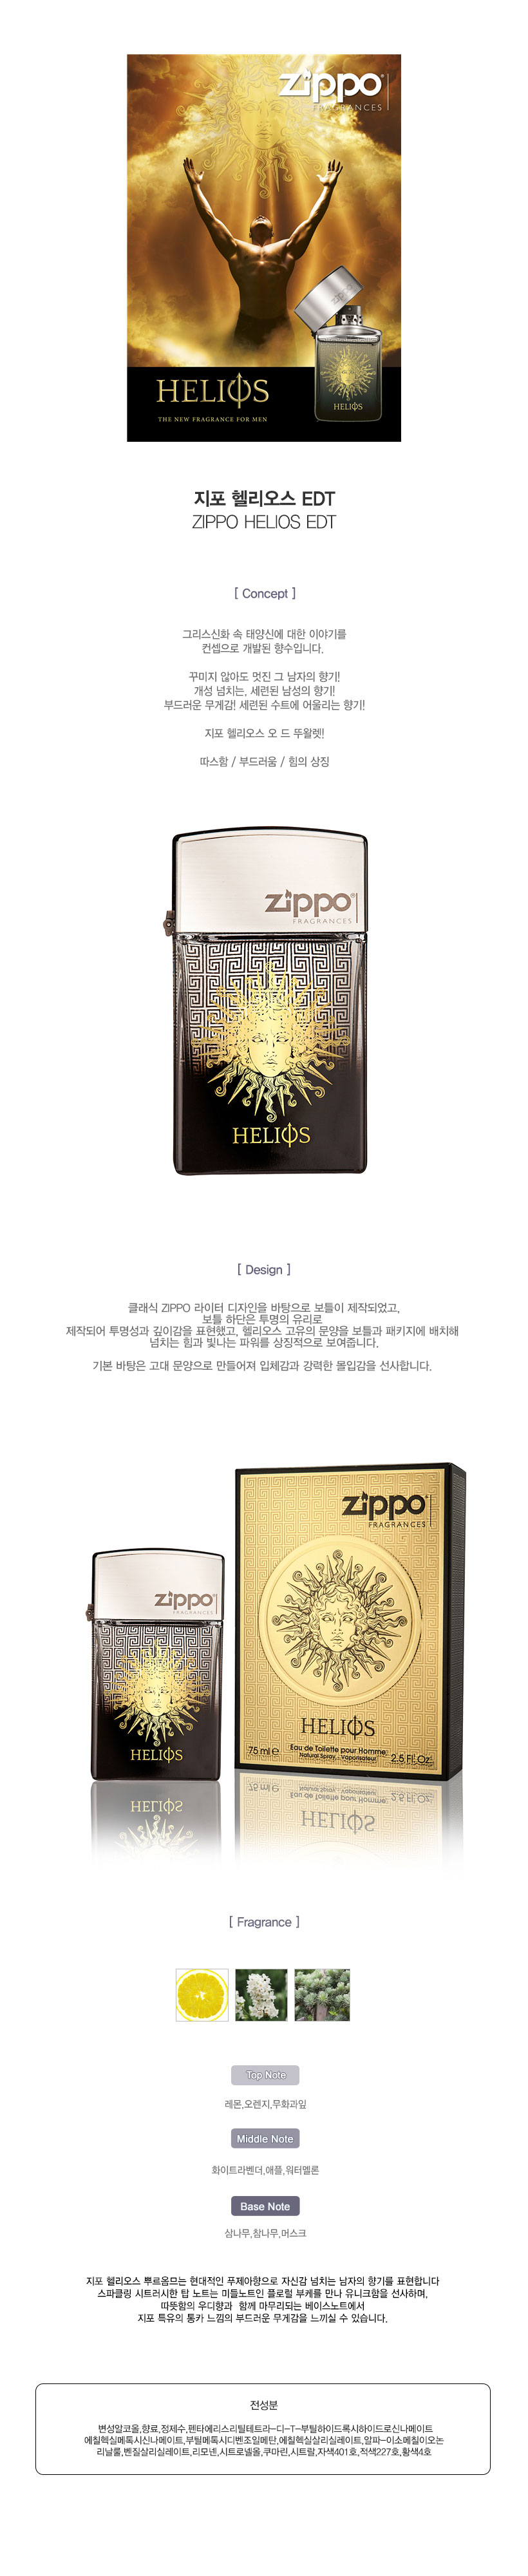 helios_edt.png